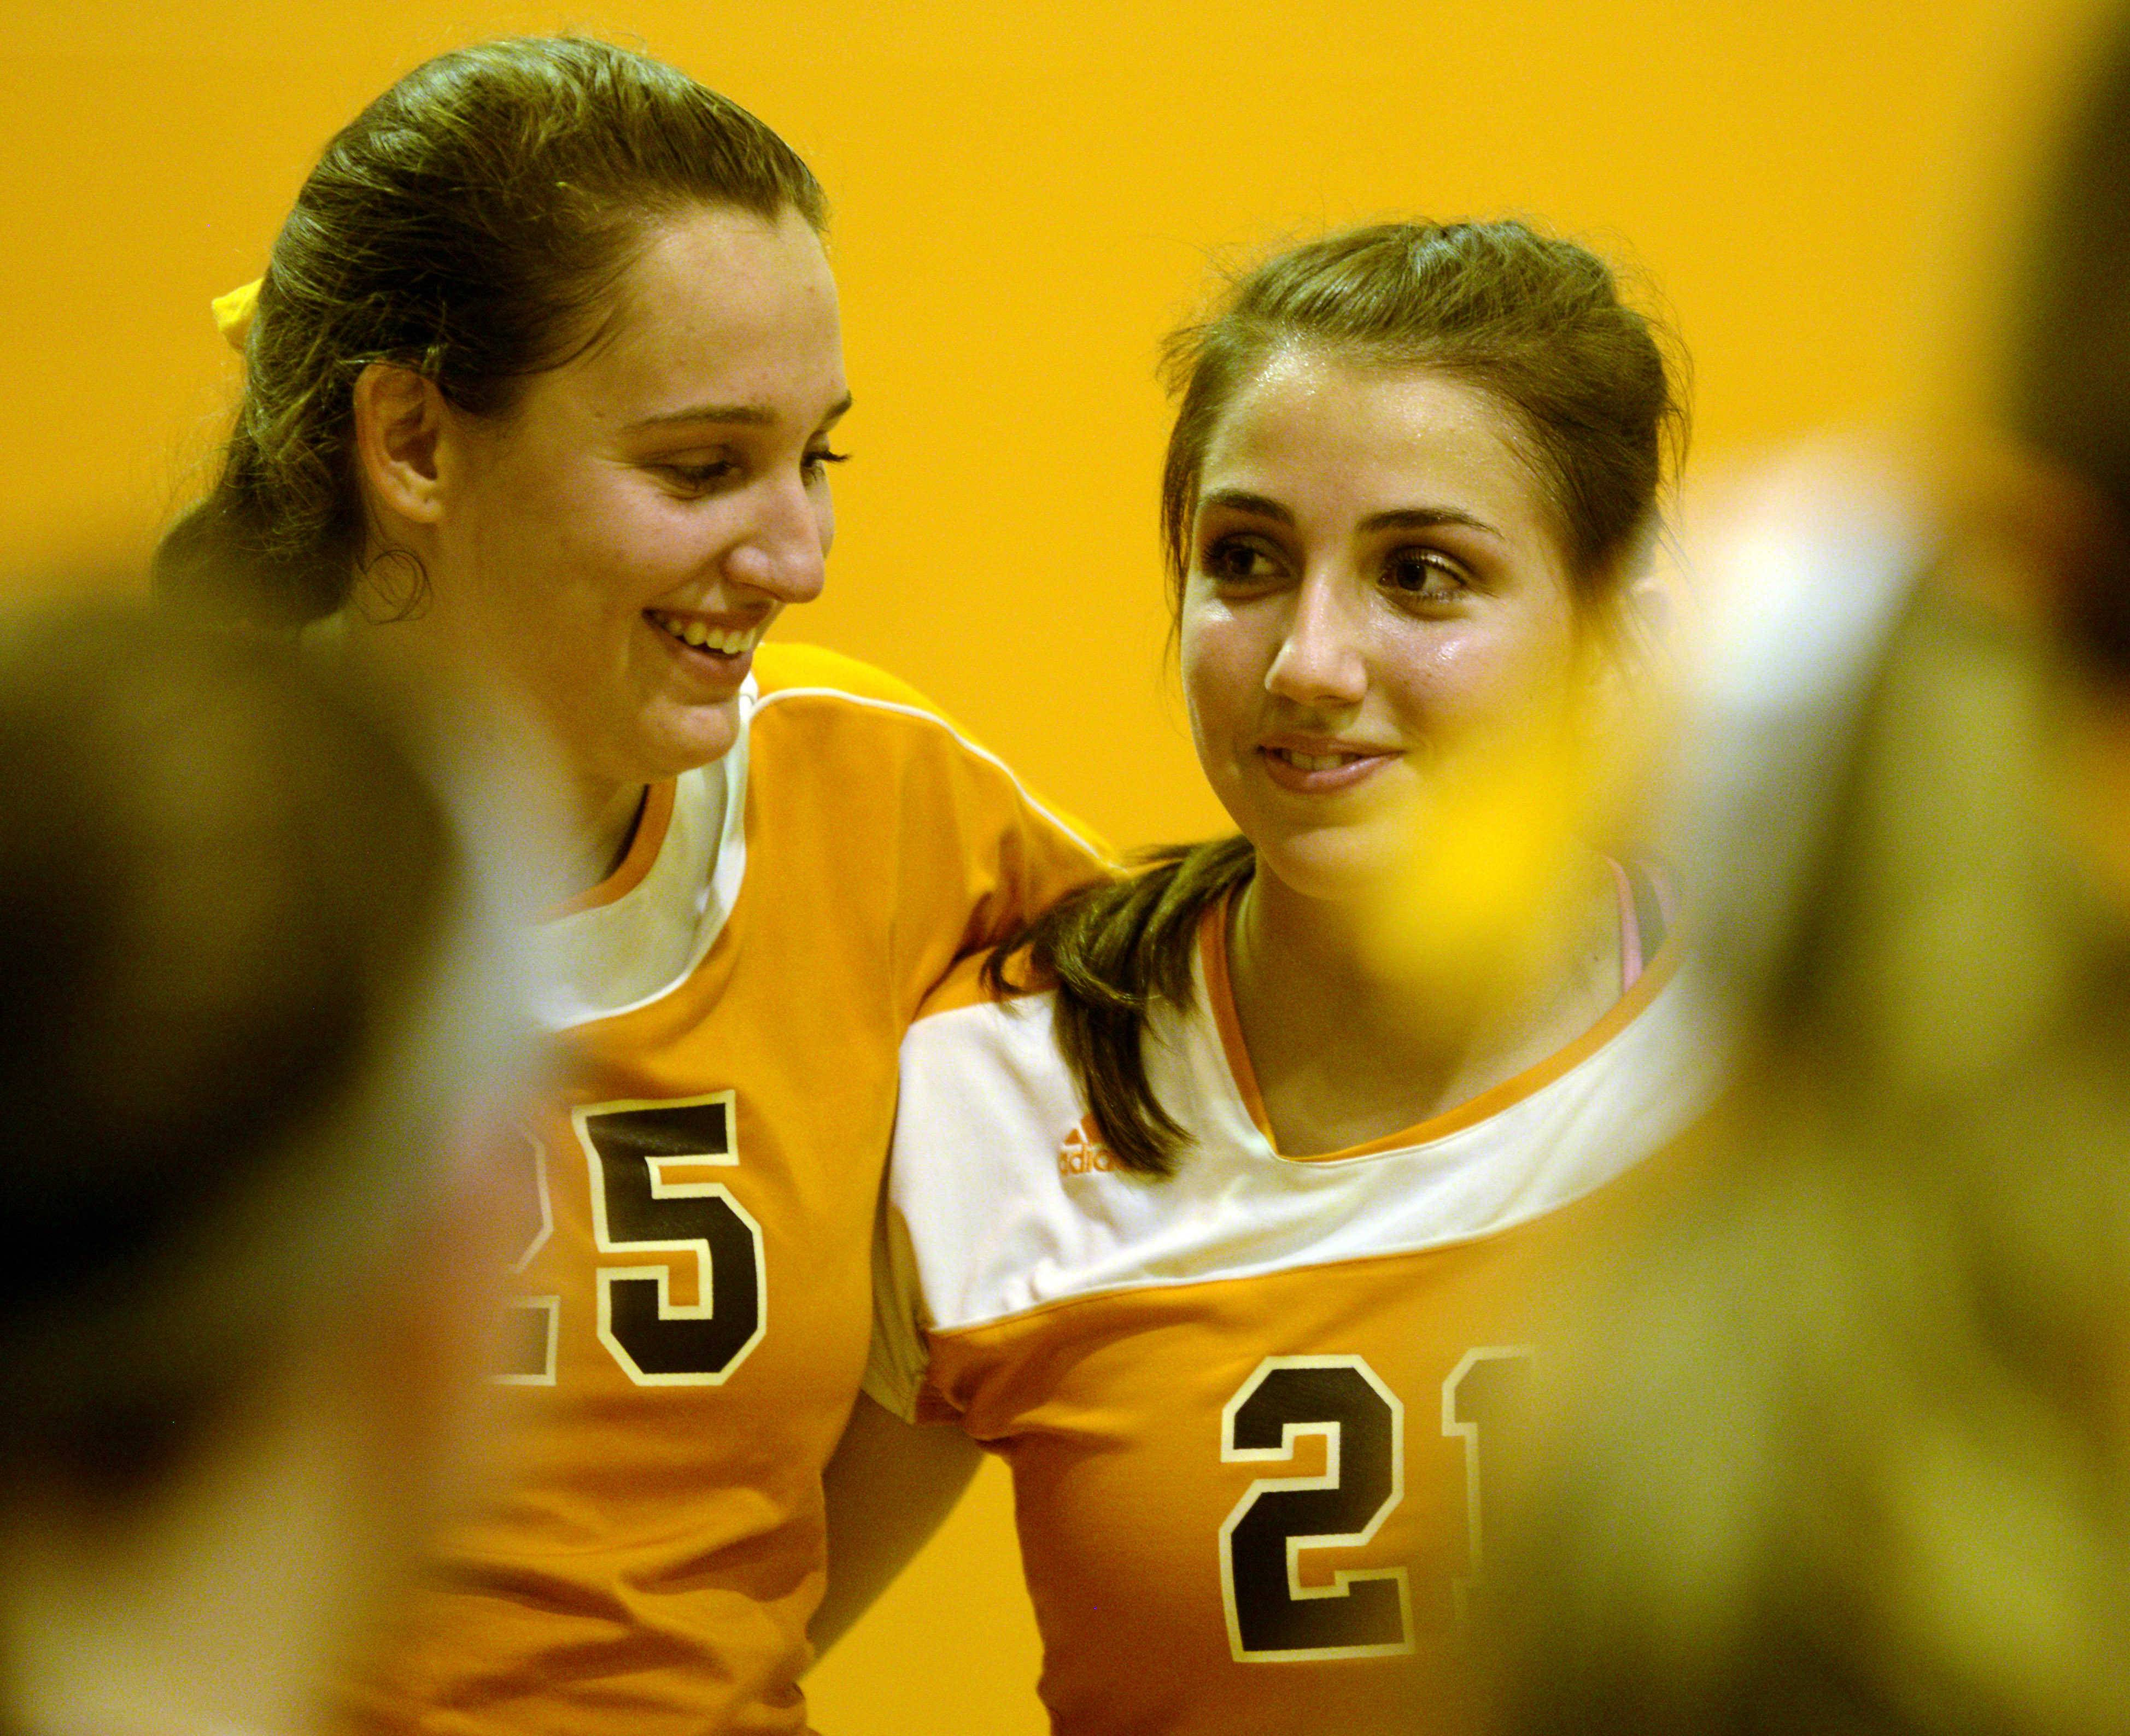 Hersey volleyball players Gabrielle Olhava, left, and Courtney Stedman, right, gather for a pregame cheer before Monday's game against Libertyville in the Ken Carter Gymnasium.